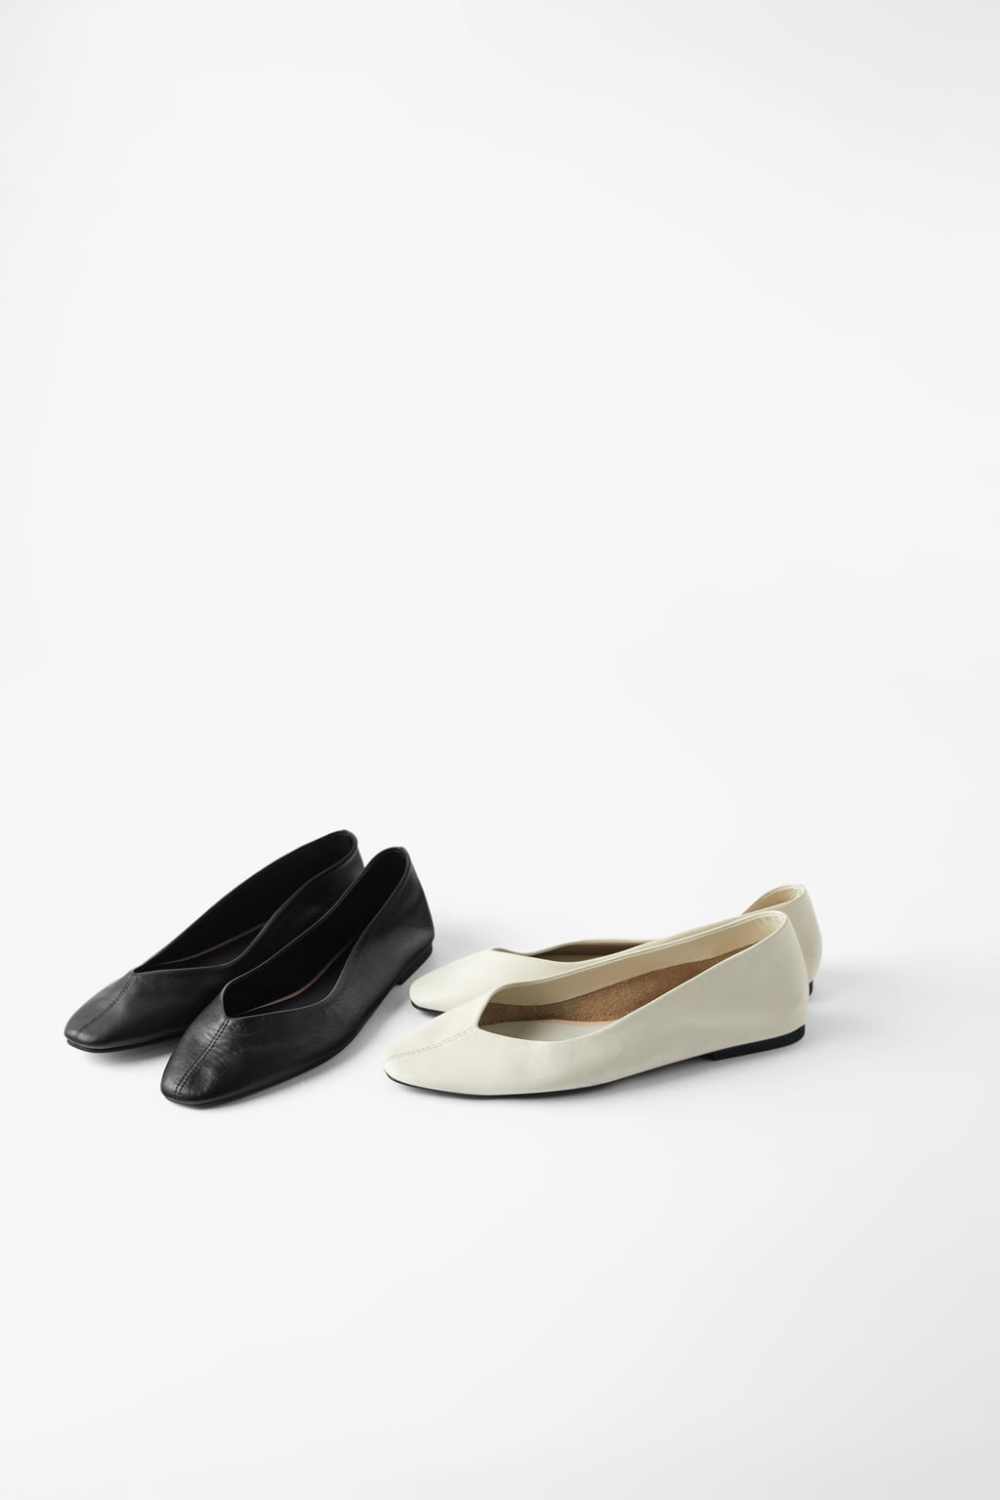 SOFT LEATHER BALLERINAS - WOMAN-SHOES